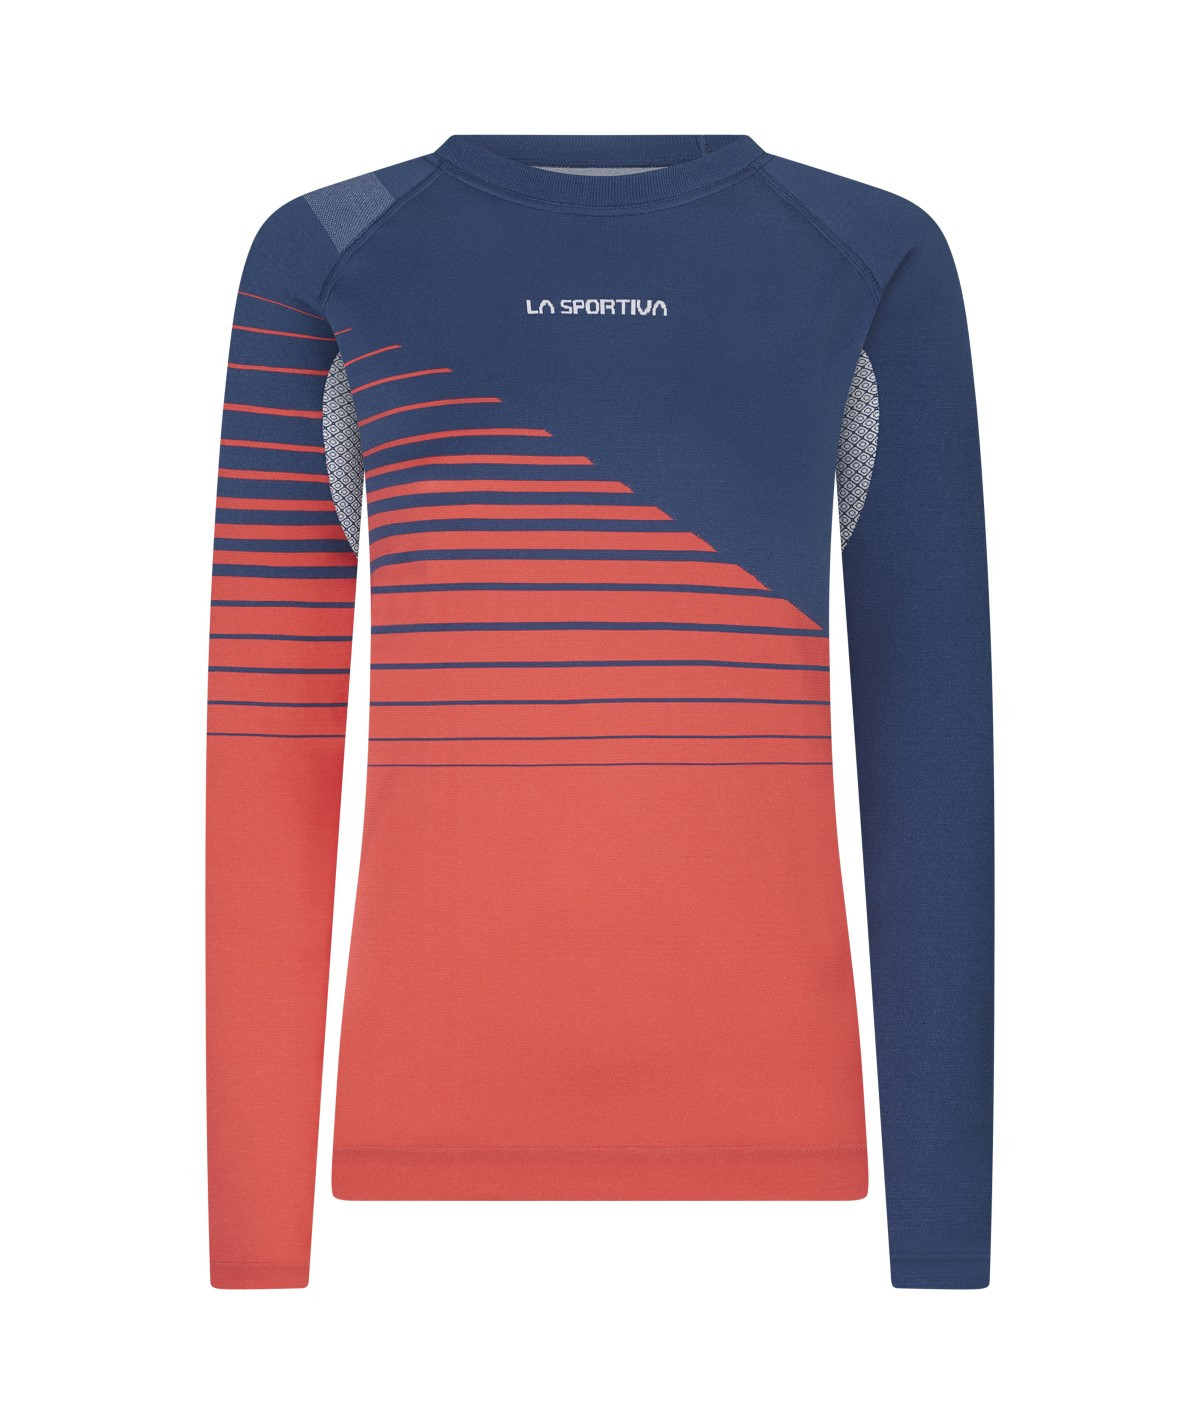 La Sportiva - Tune Long Sleeve